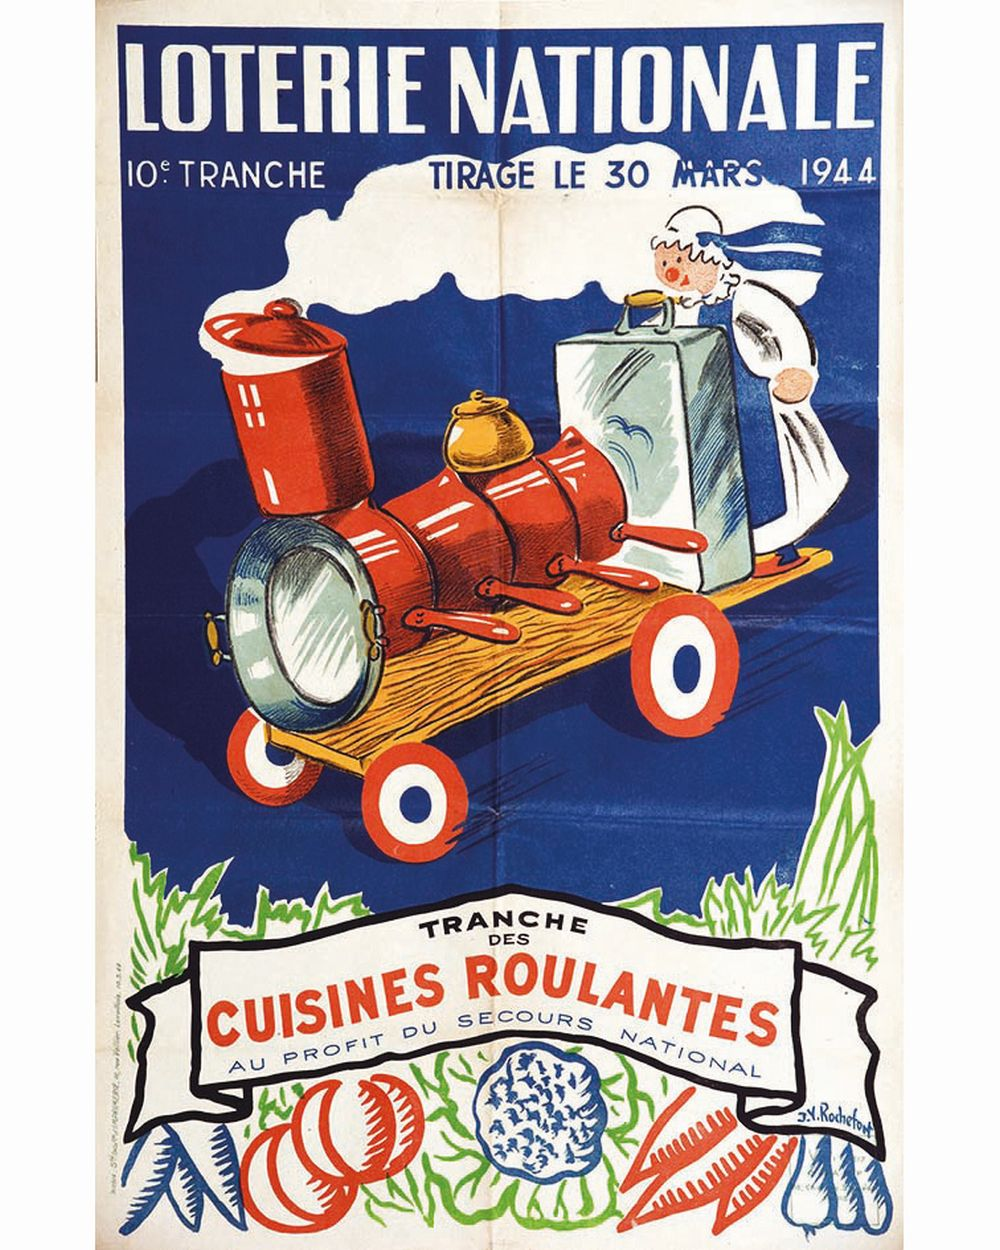 ROCHEFORT J.Y. - Cuisines Roulantes Loterie Nationale     1944